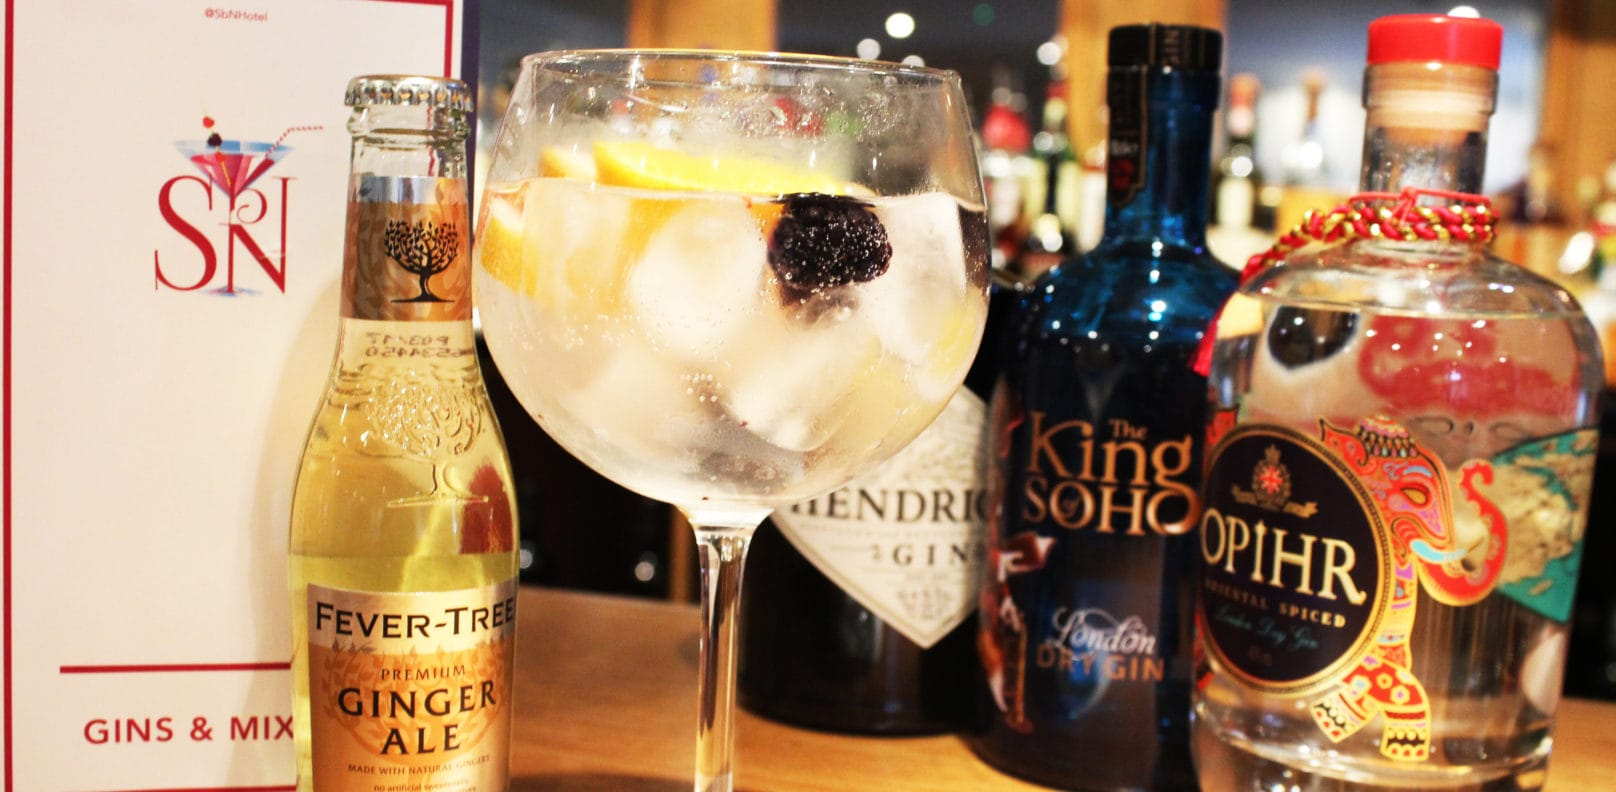 Gin glass with gins on bar